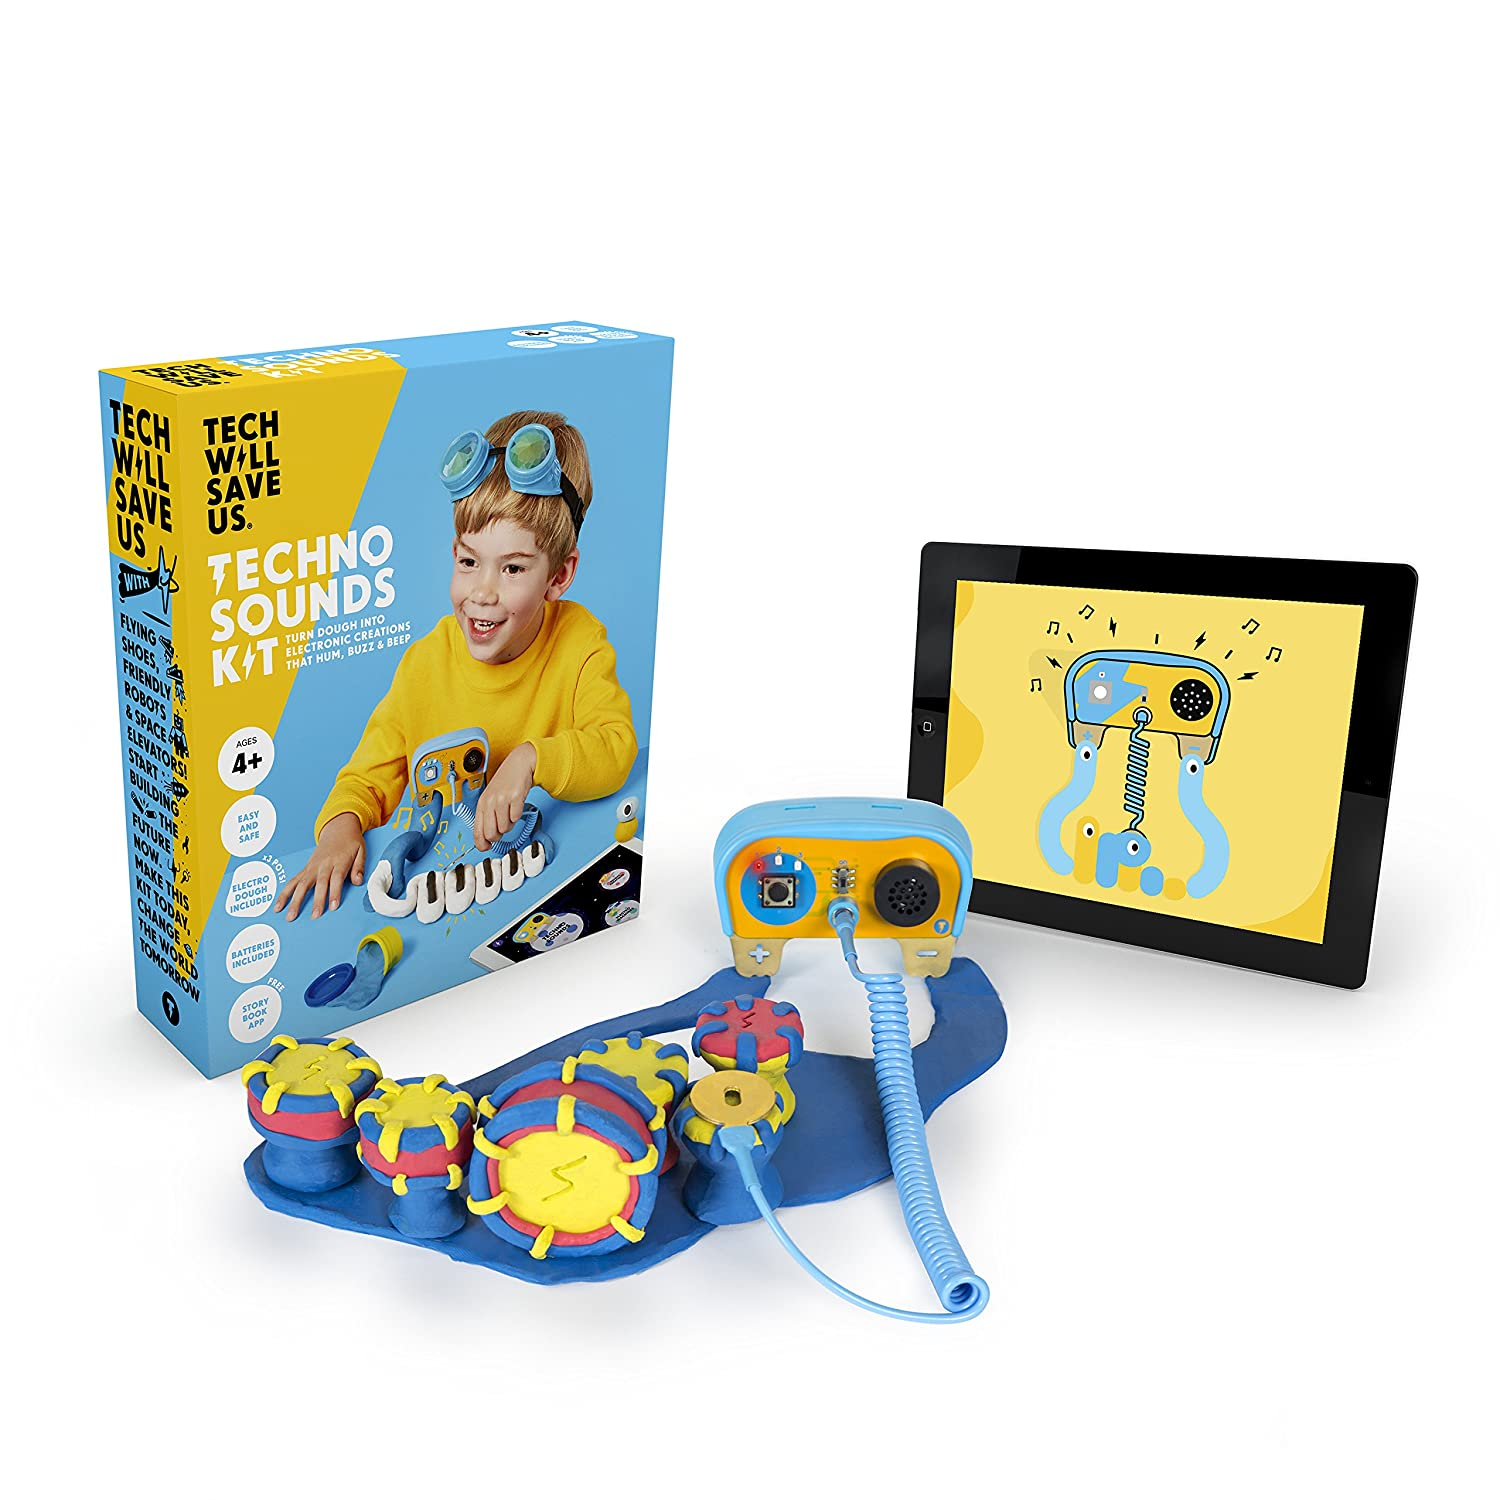 Tech Will Save Us Ages 4 and Up Technolgy Will Save Us 5060402300417 Educational STEM Toy Techno Sounds Kit